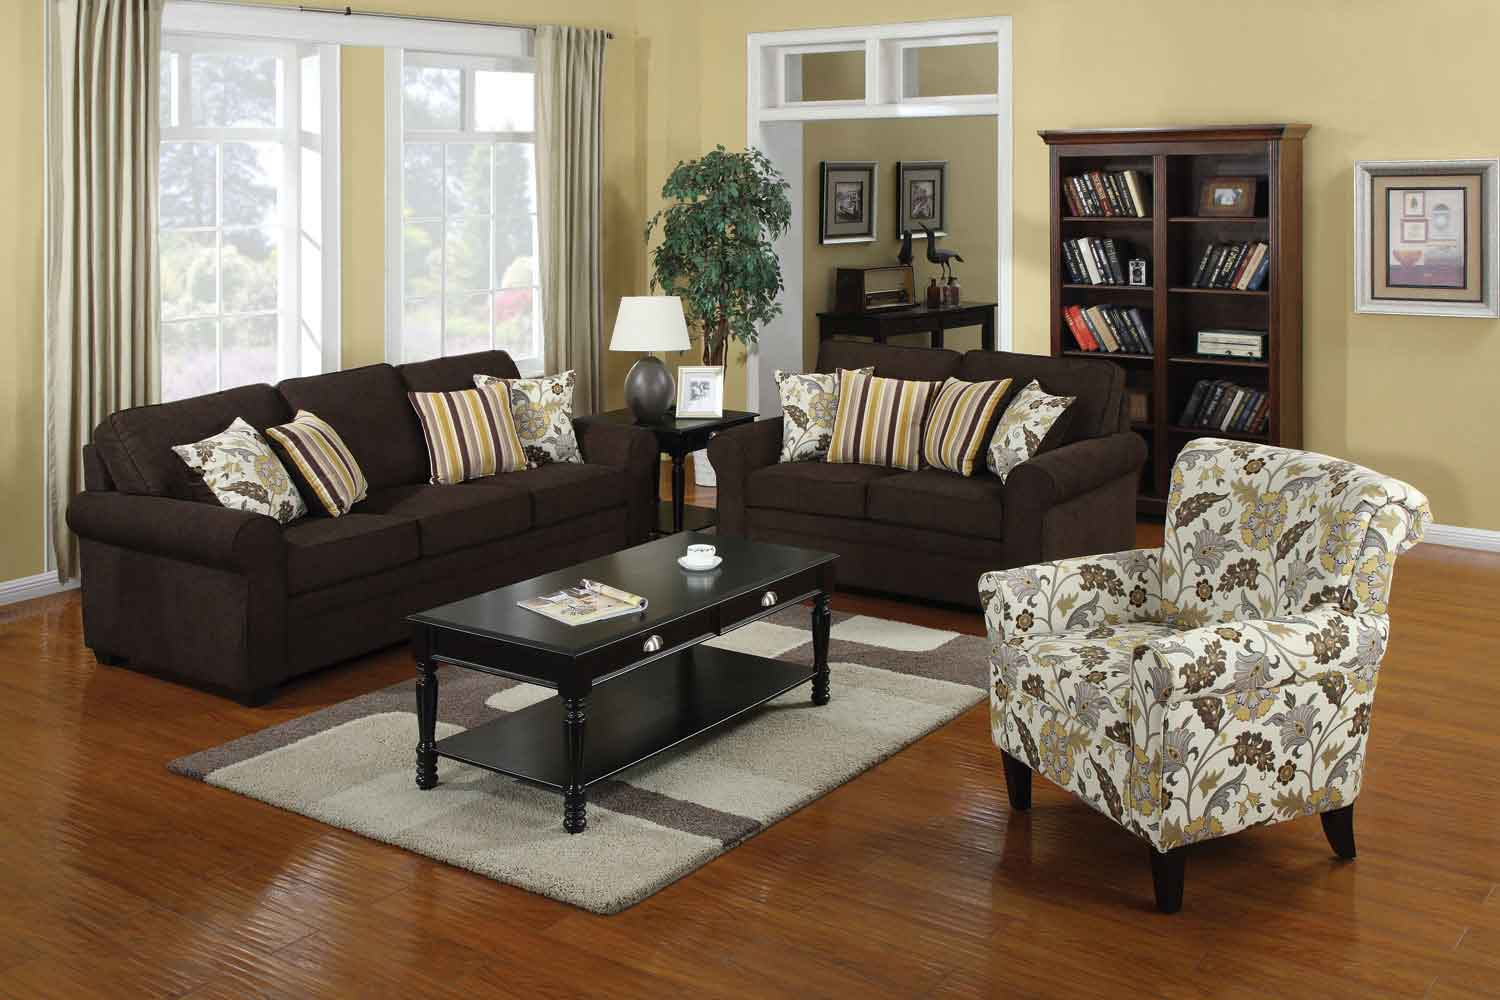 Coaster Rosalie Living Room Set Brown Black 504241 Livset At